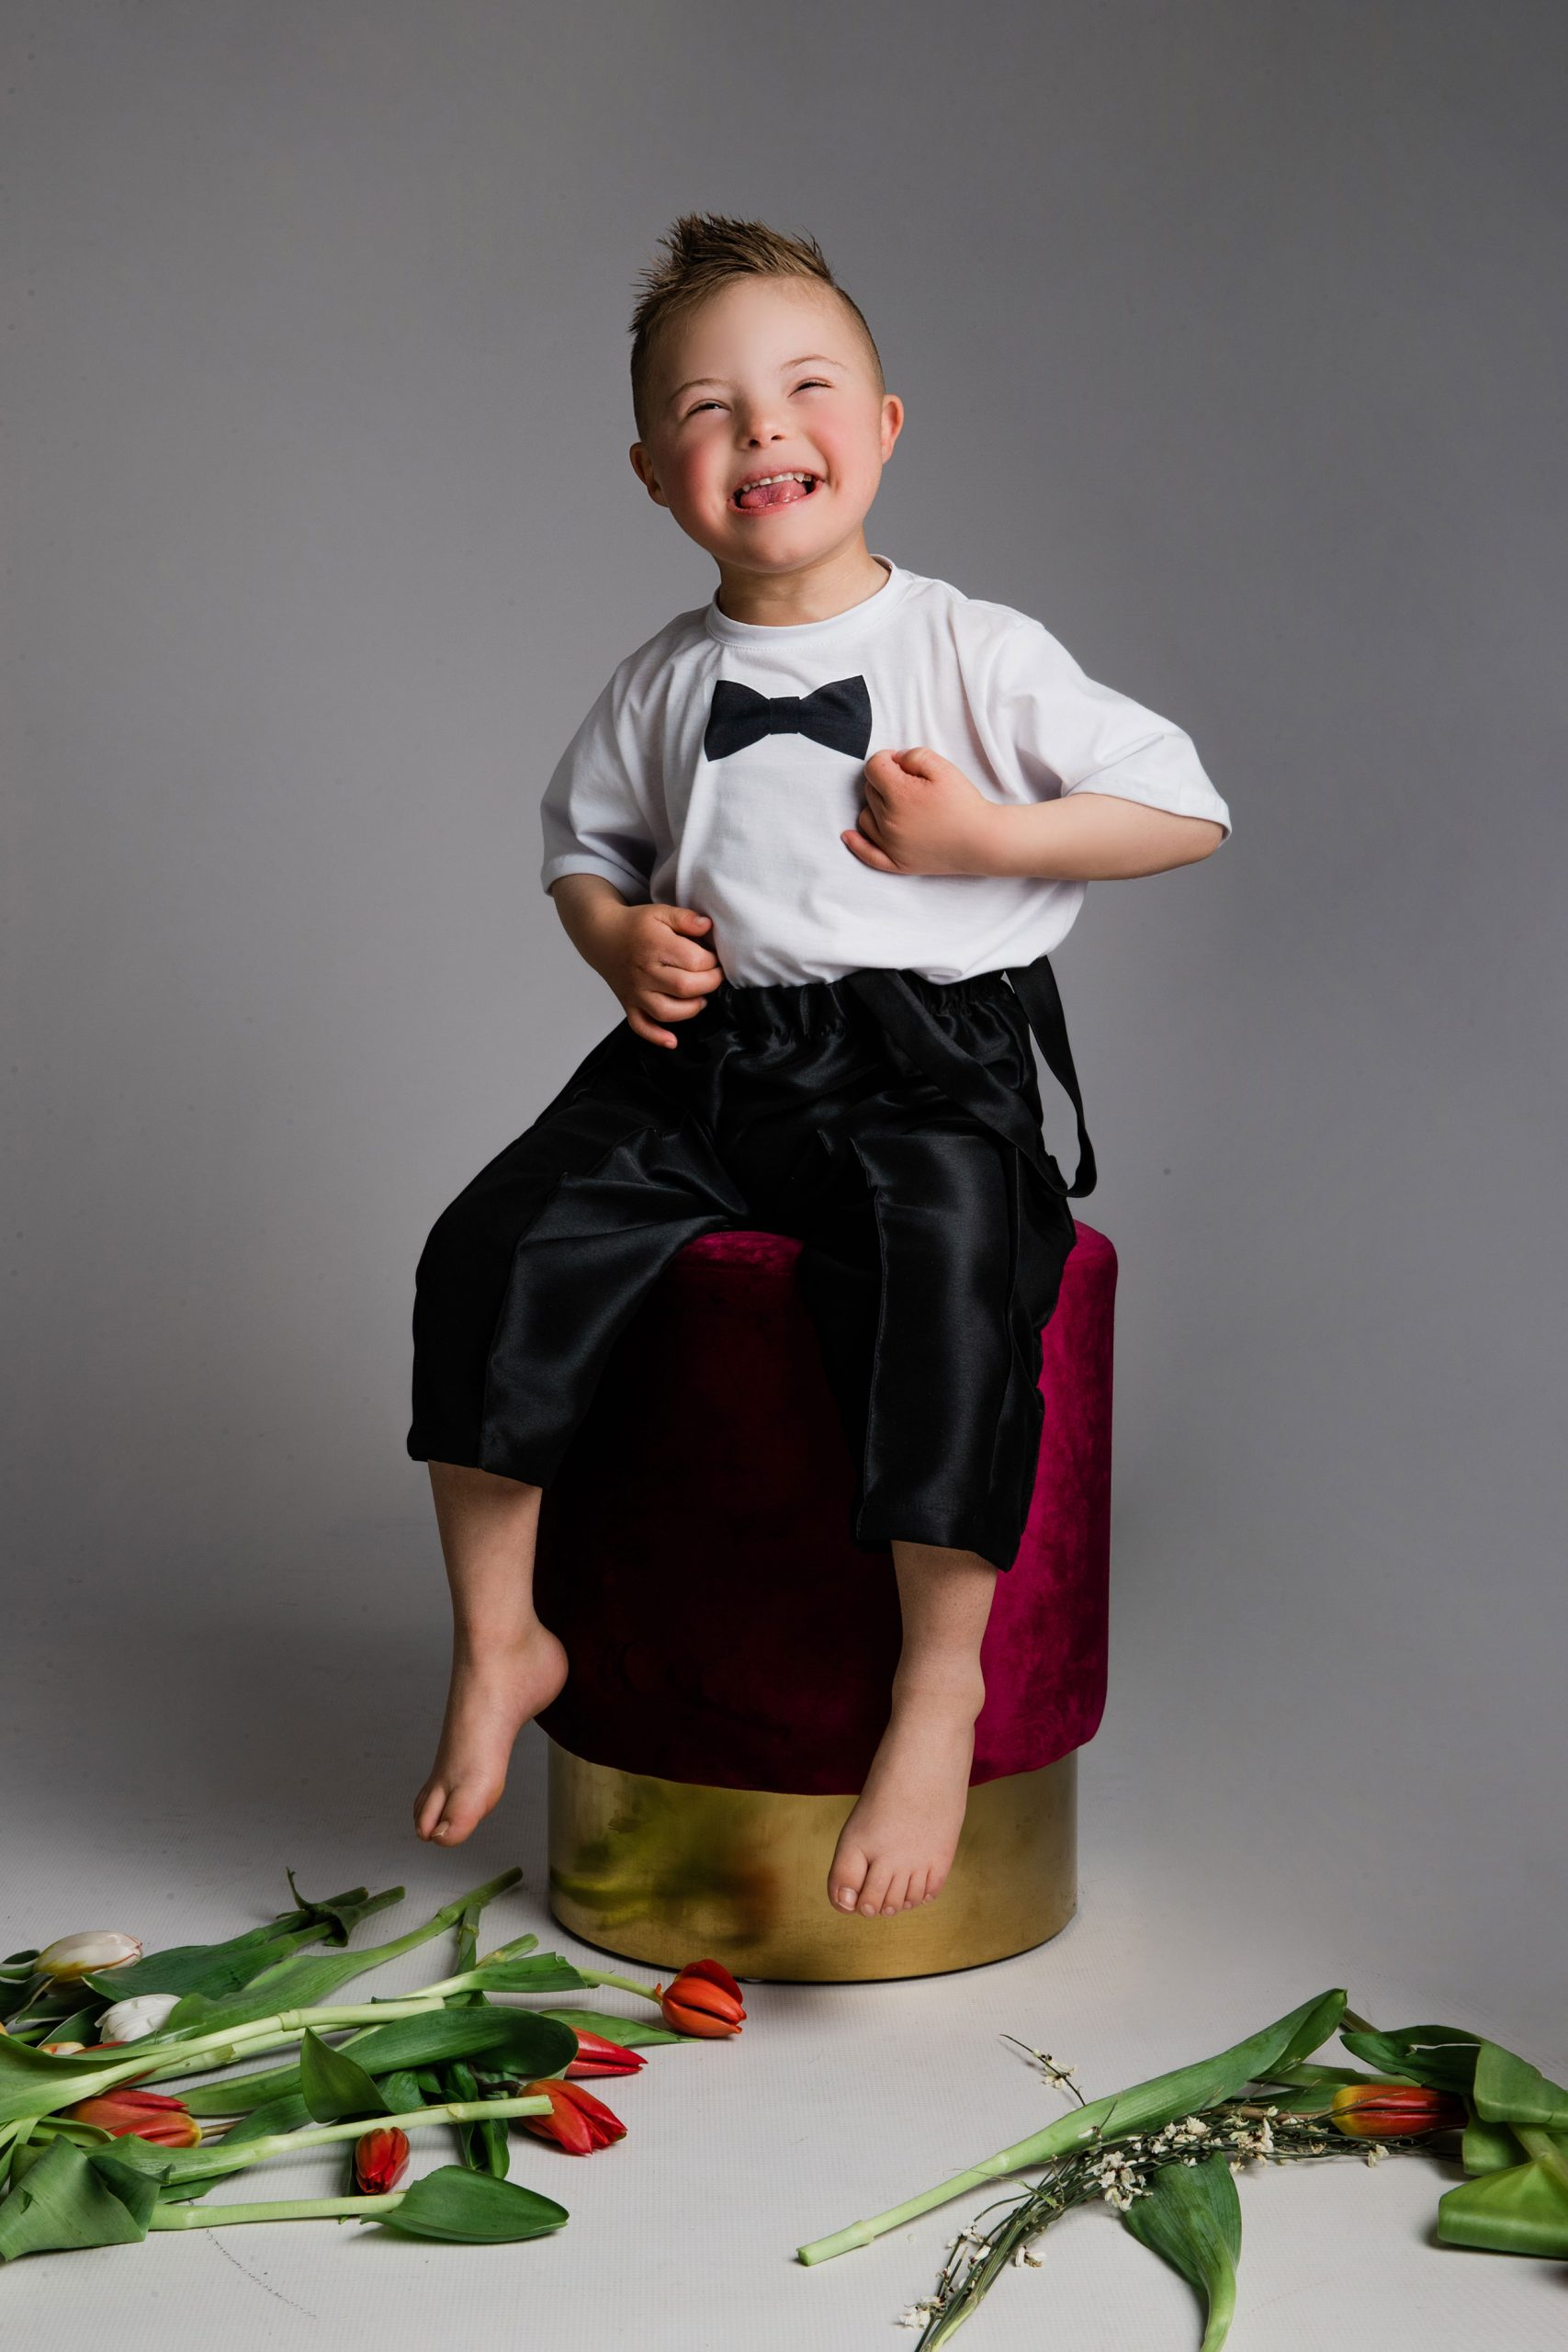 Little boy laughing and having a good time at the studio